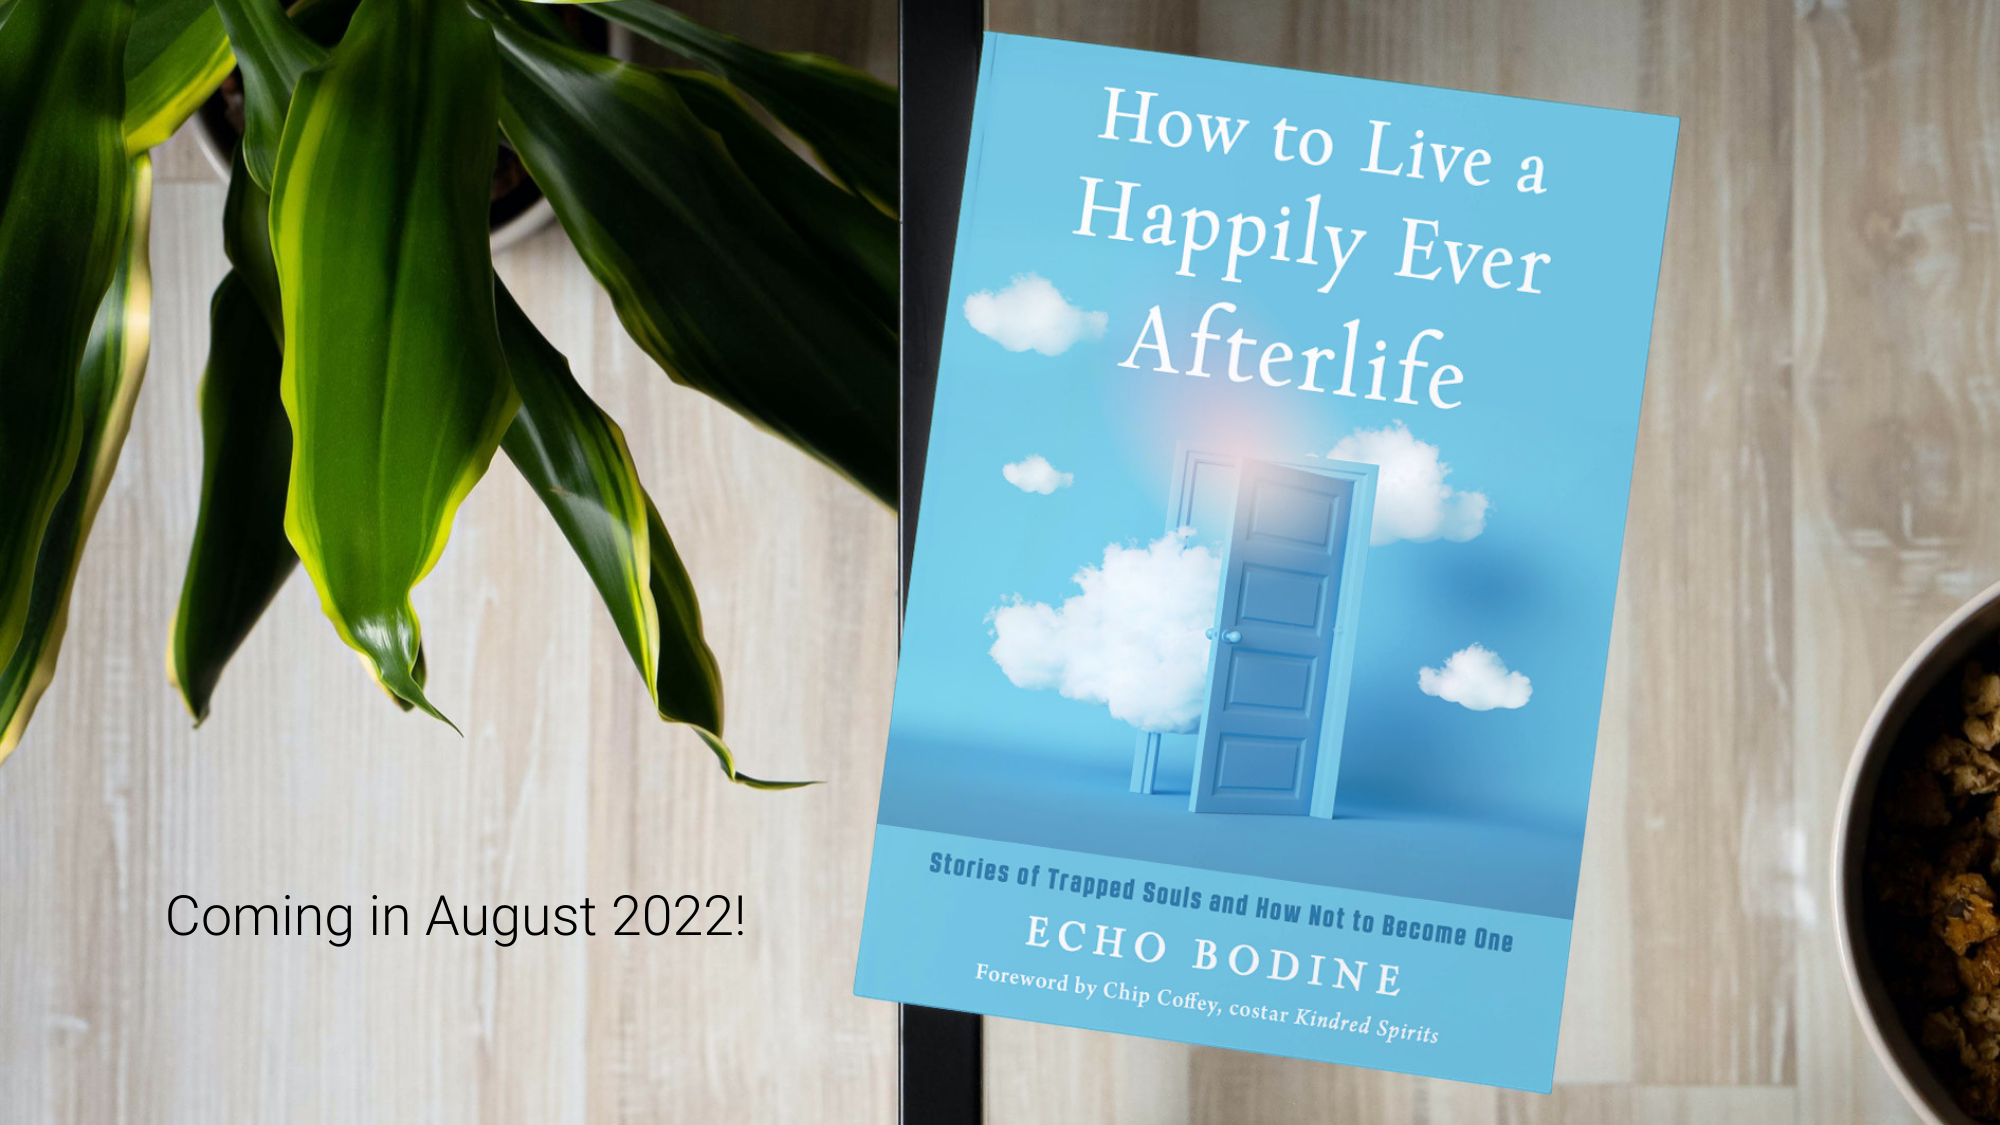 How to Live a Happily Ever Afterlife